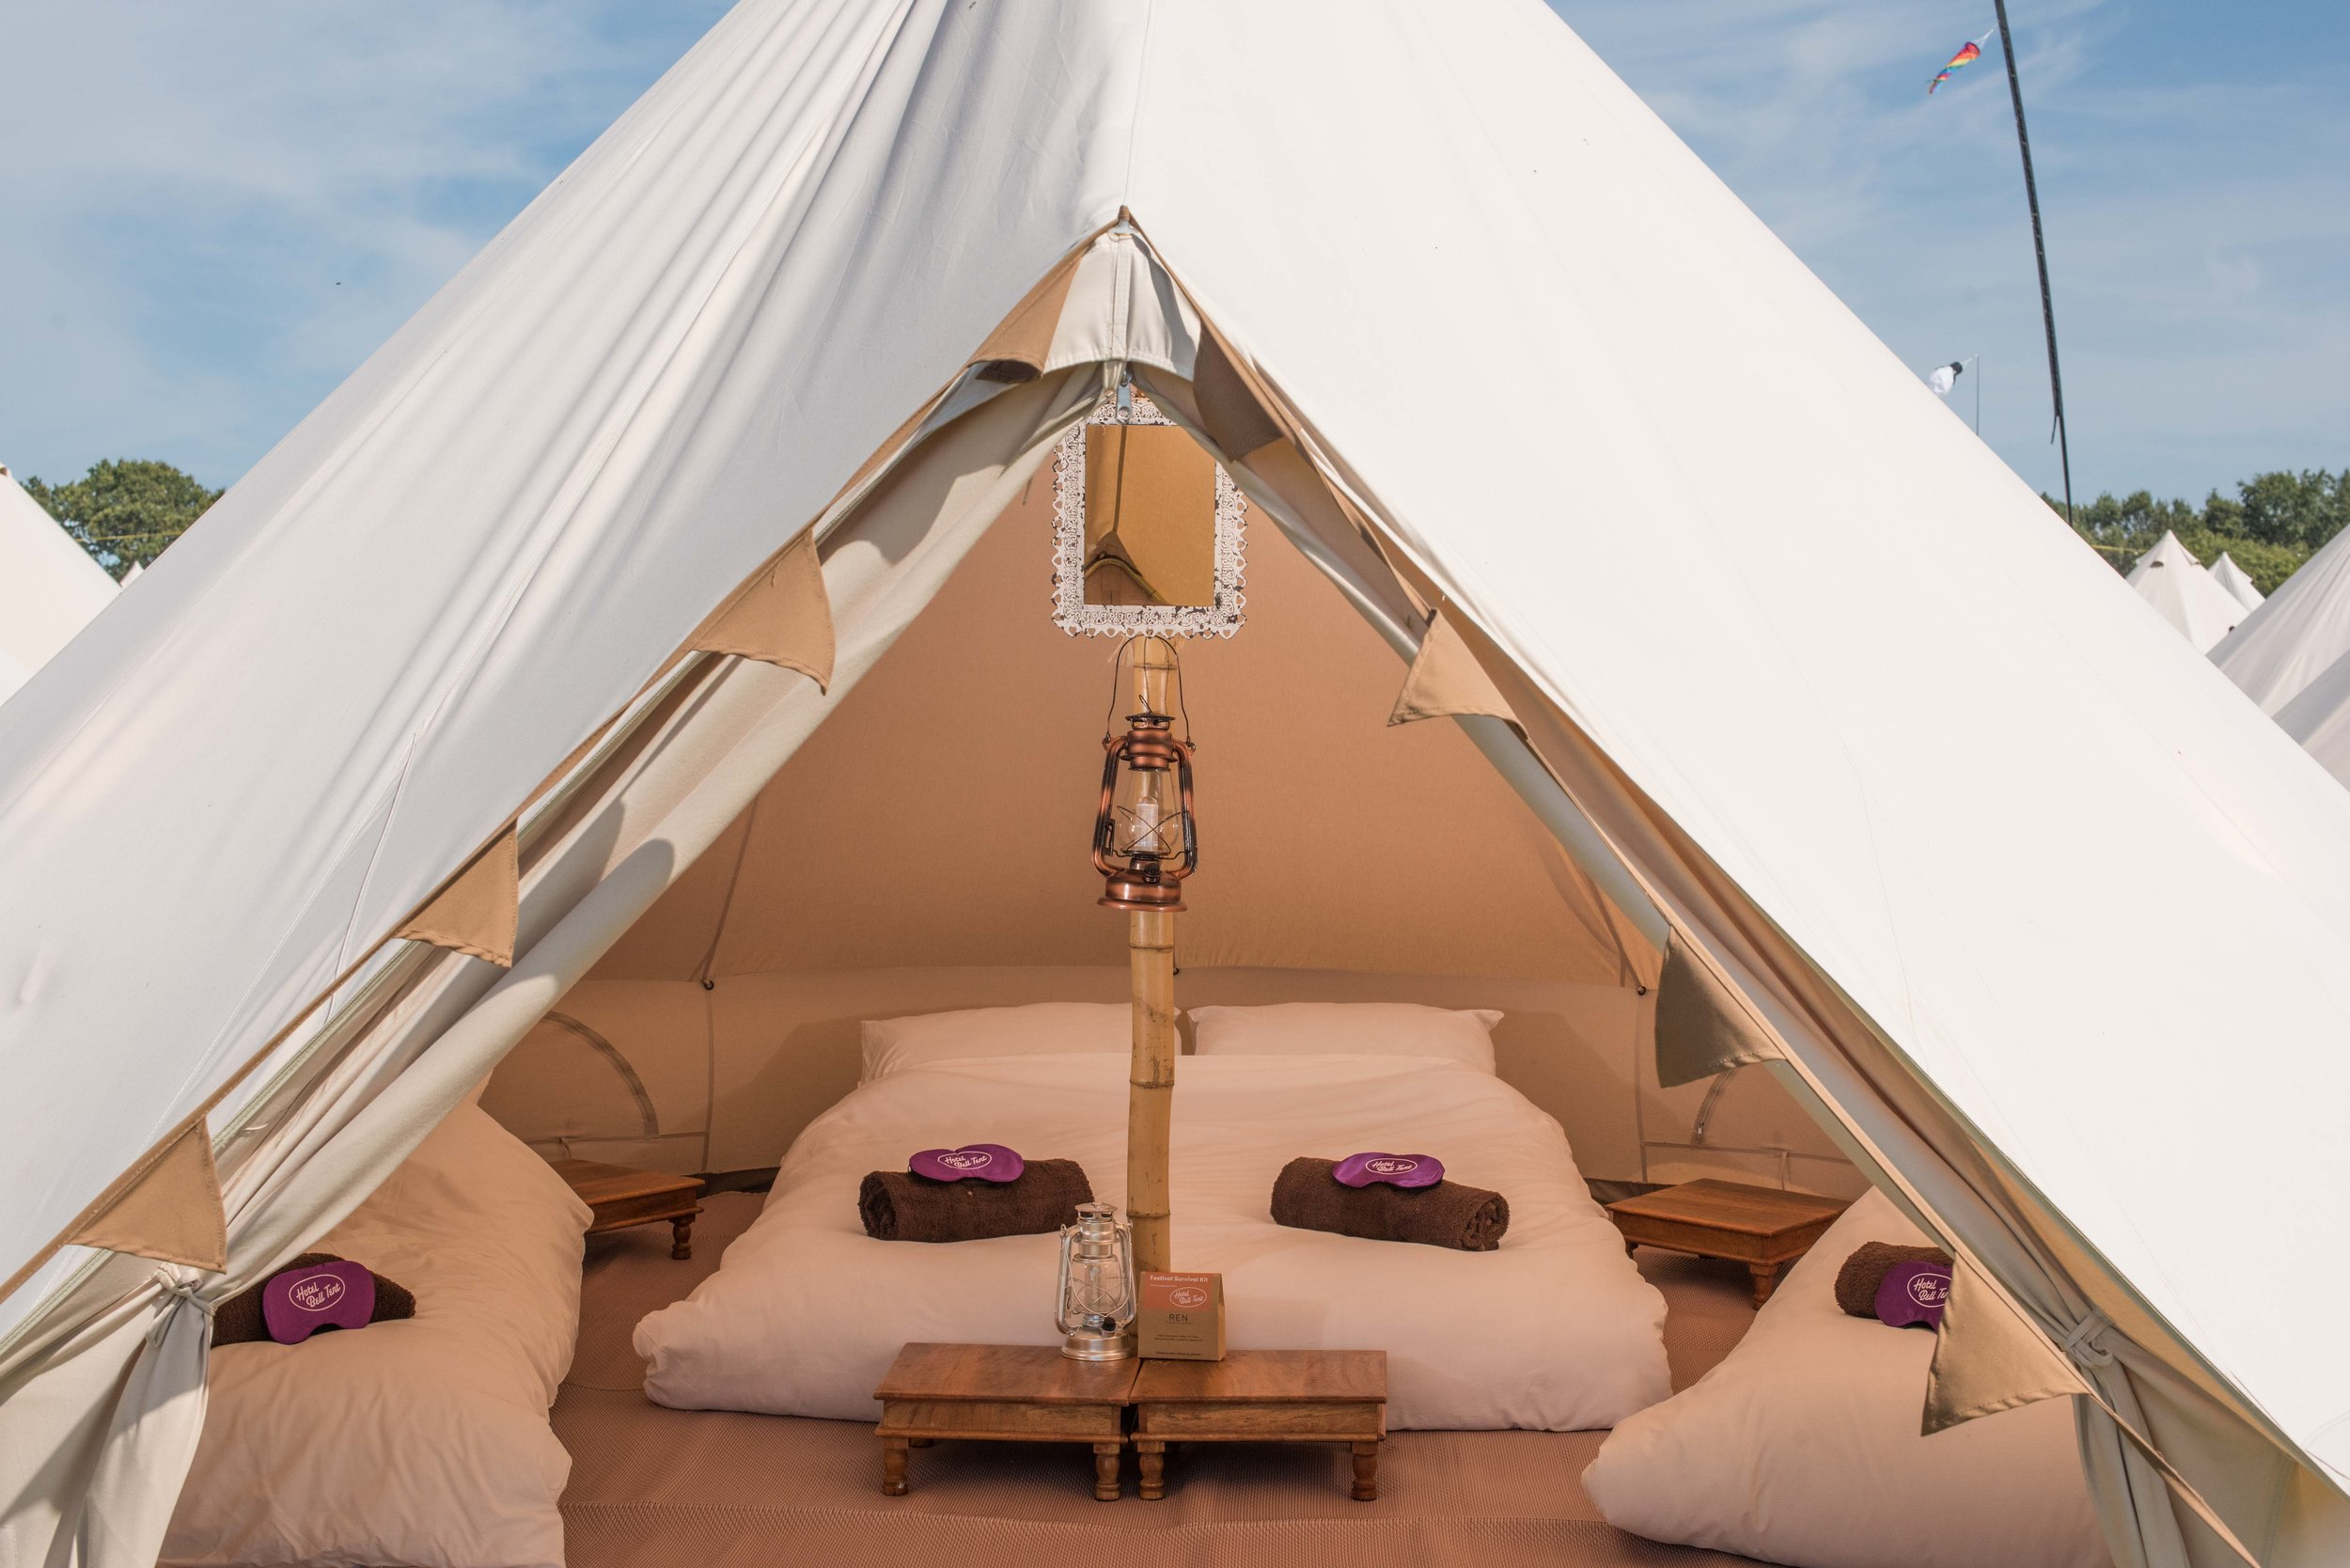 3, hotel-bell-tent-classic-package-4.jpg